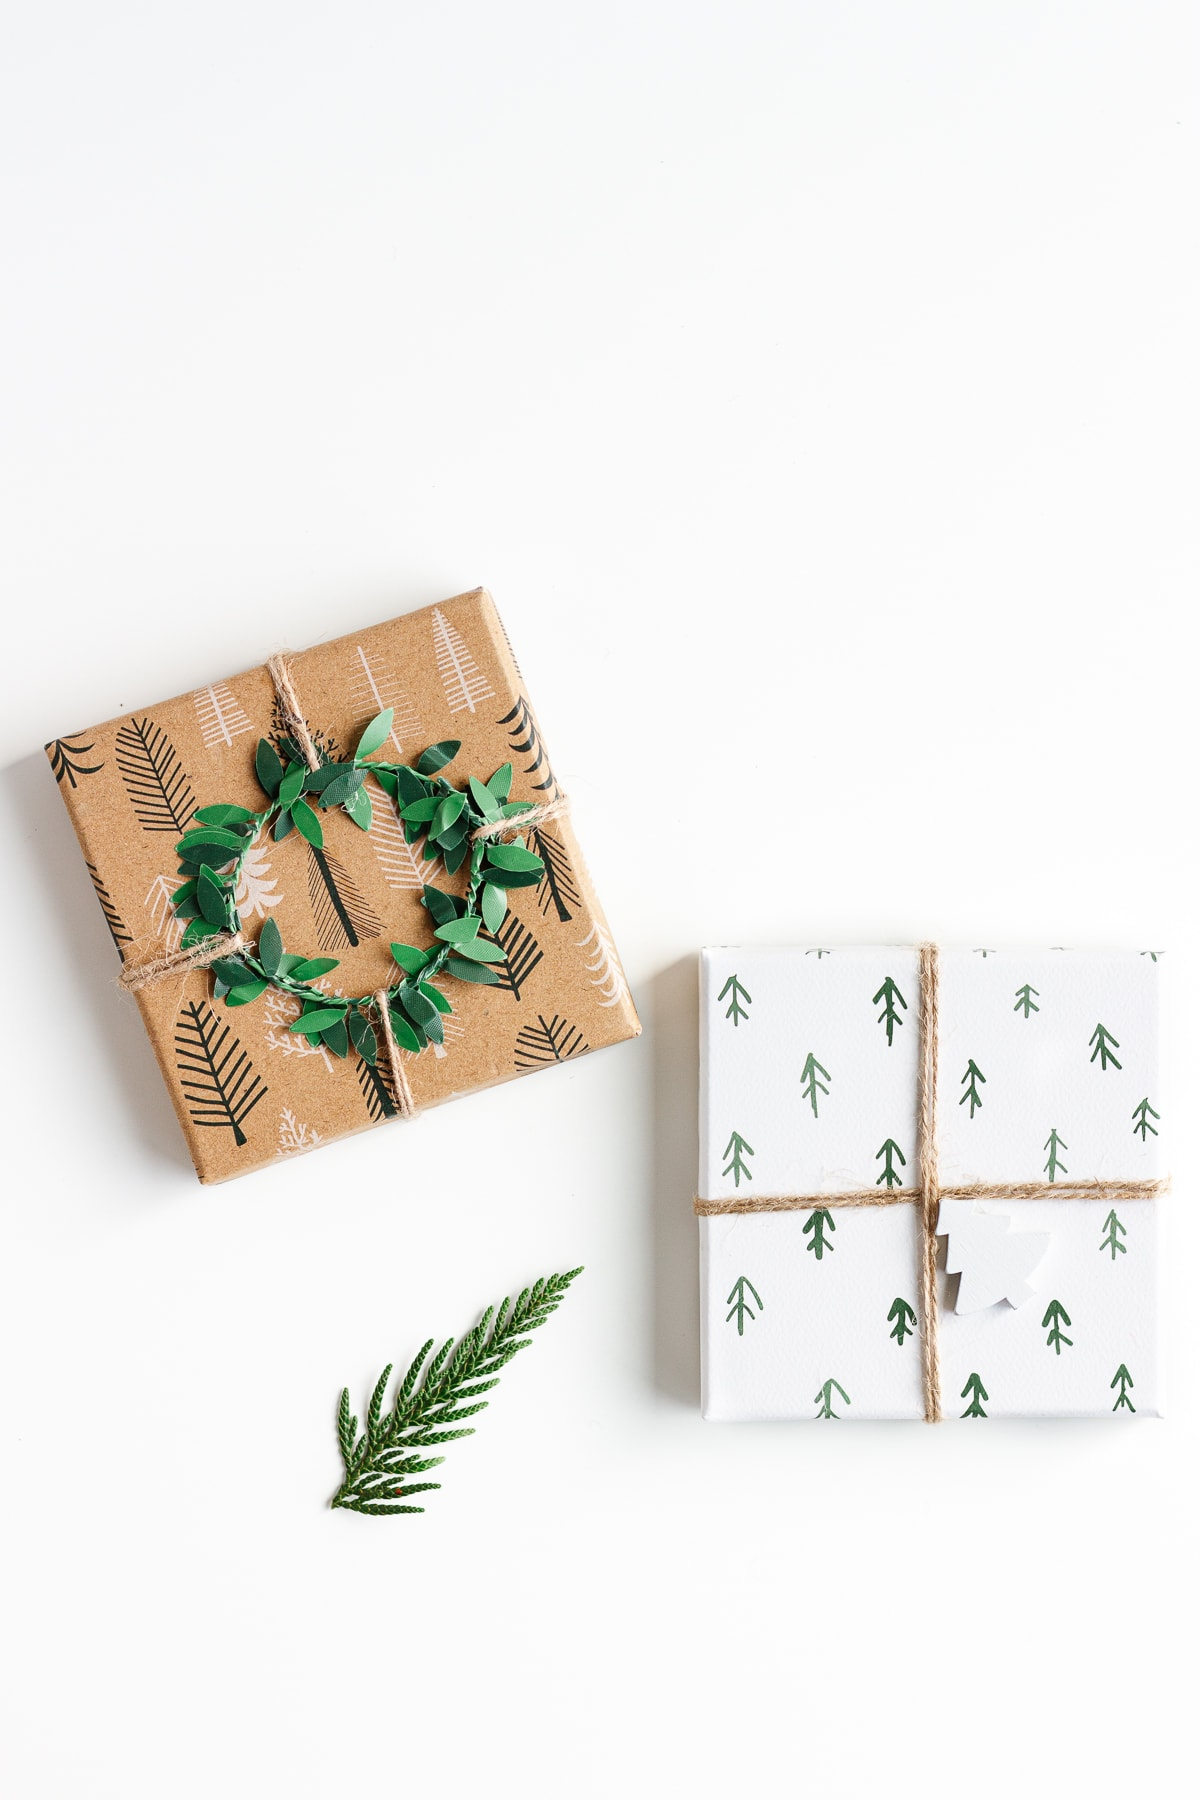 Overhead photo of two Christmas gifts and a small evergreen branch on a white background.